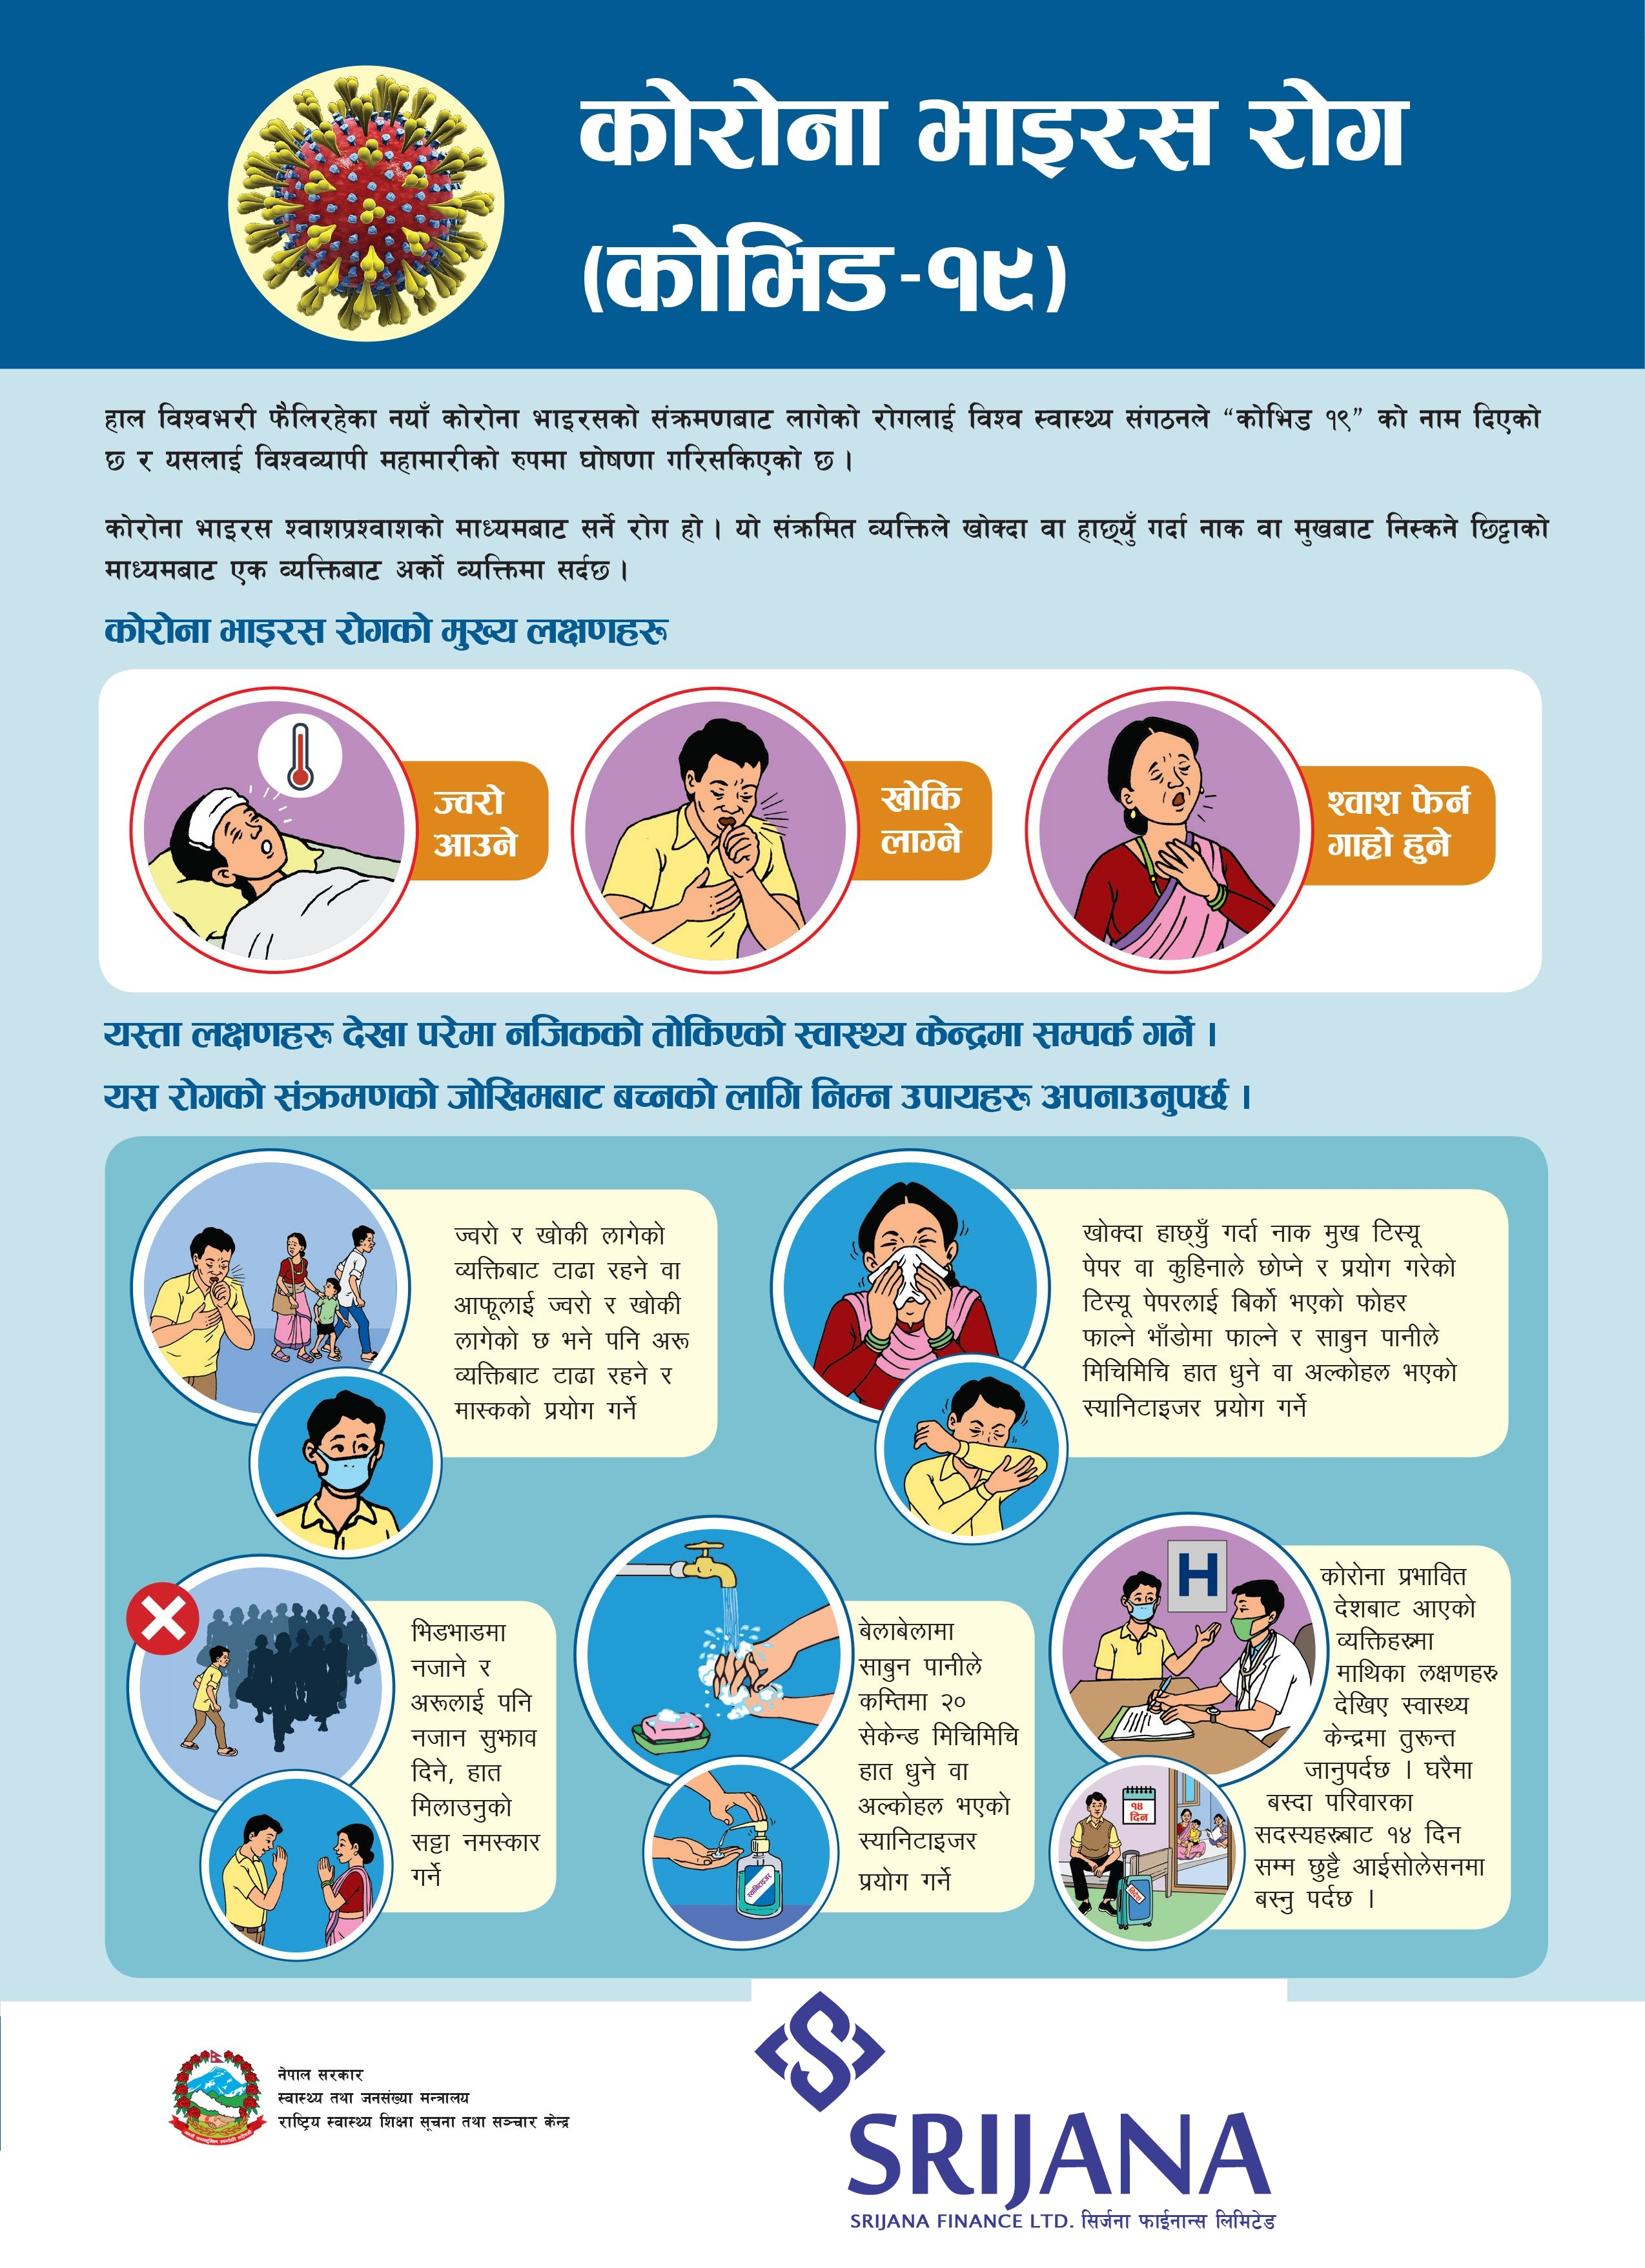 114 108 symptoms and prevention measures nep